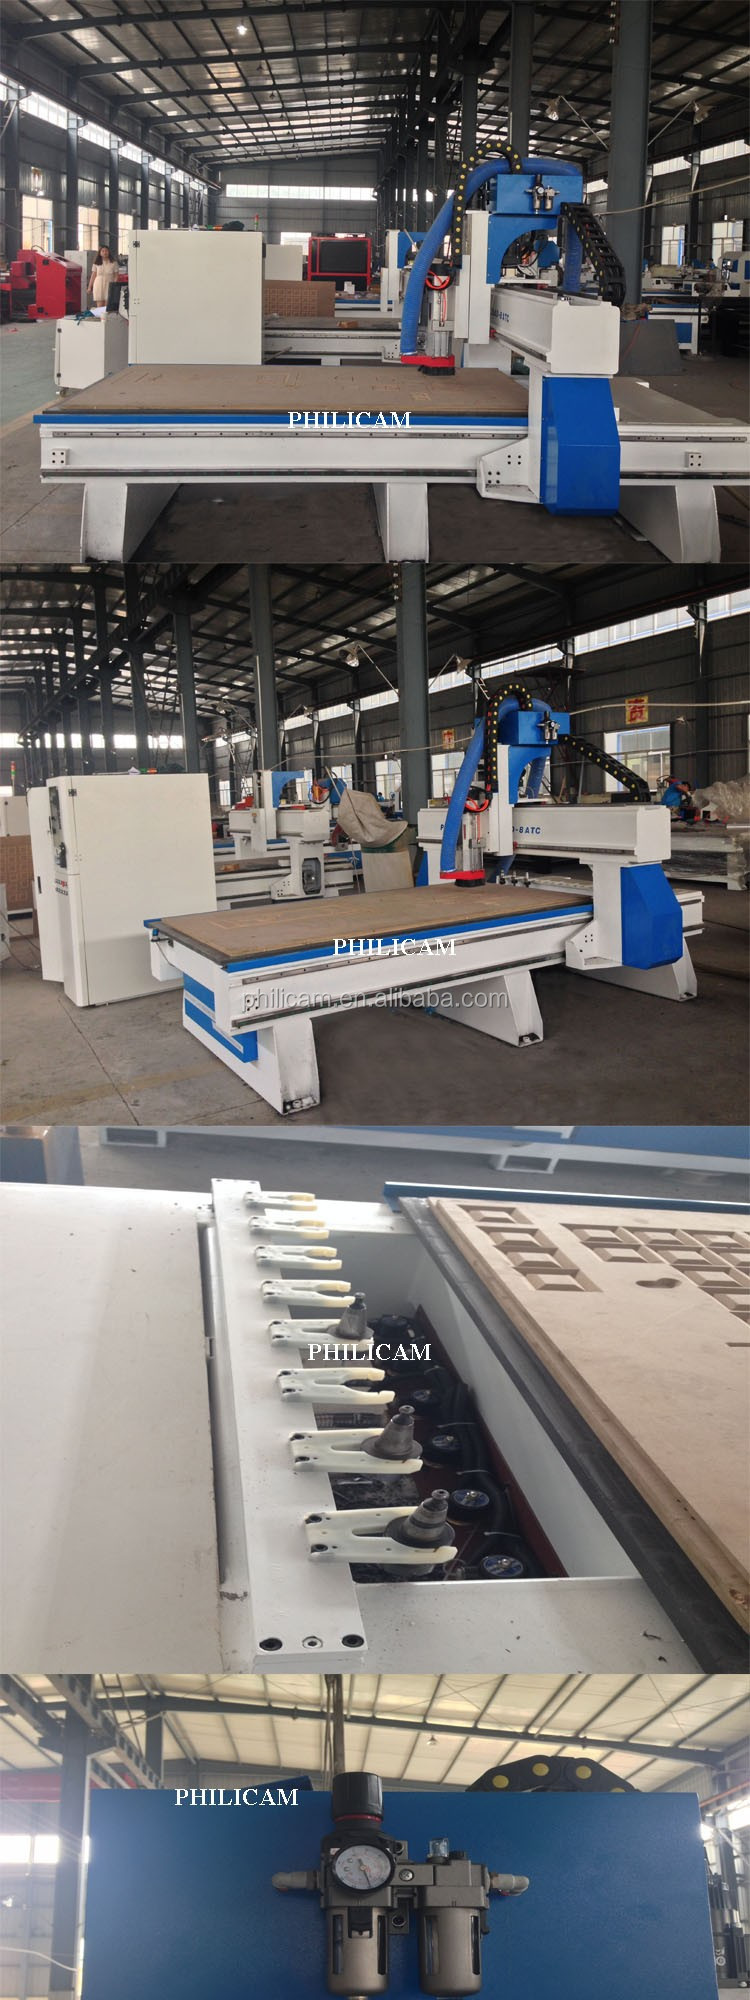 High speed quality cnc atc 1325 3d wood carving machine/cnc woodworking router cutting engraving machine